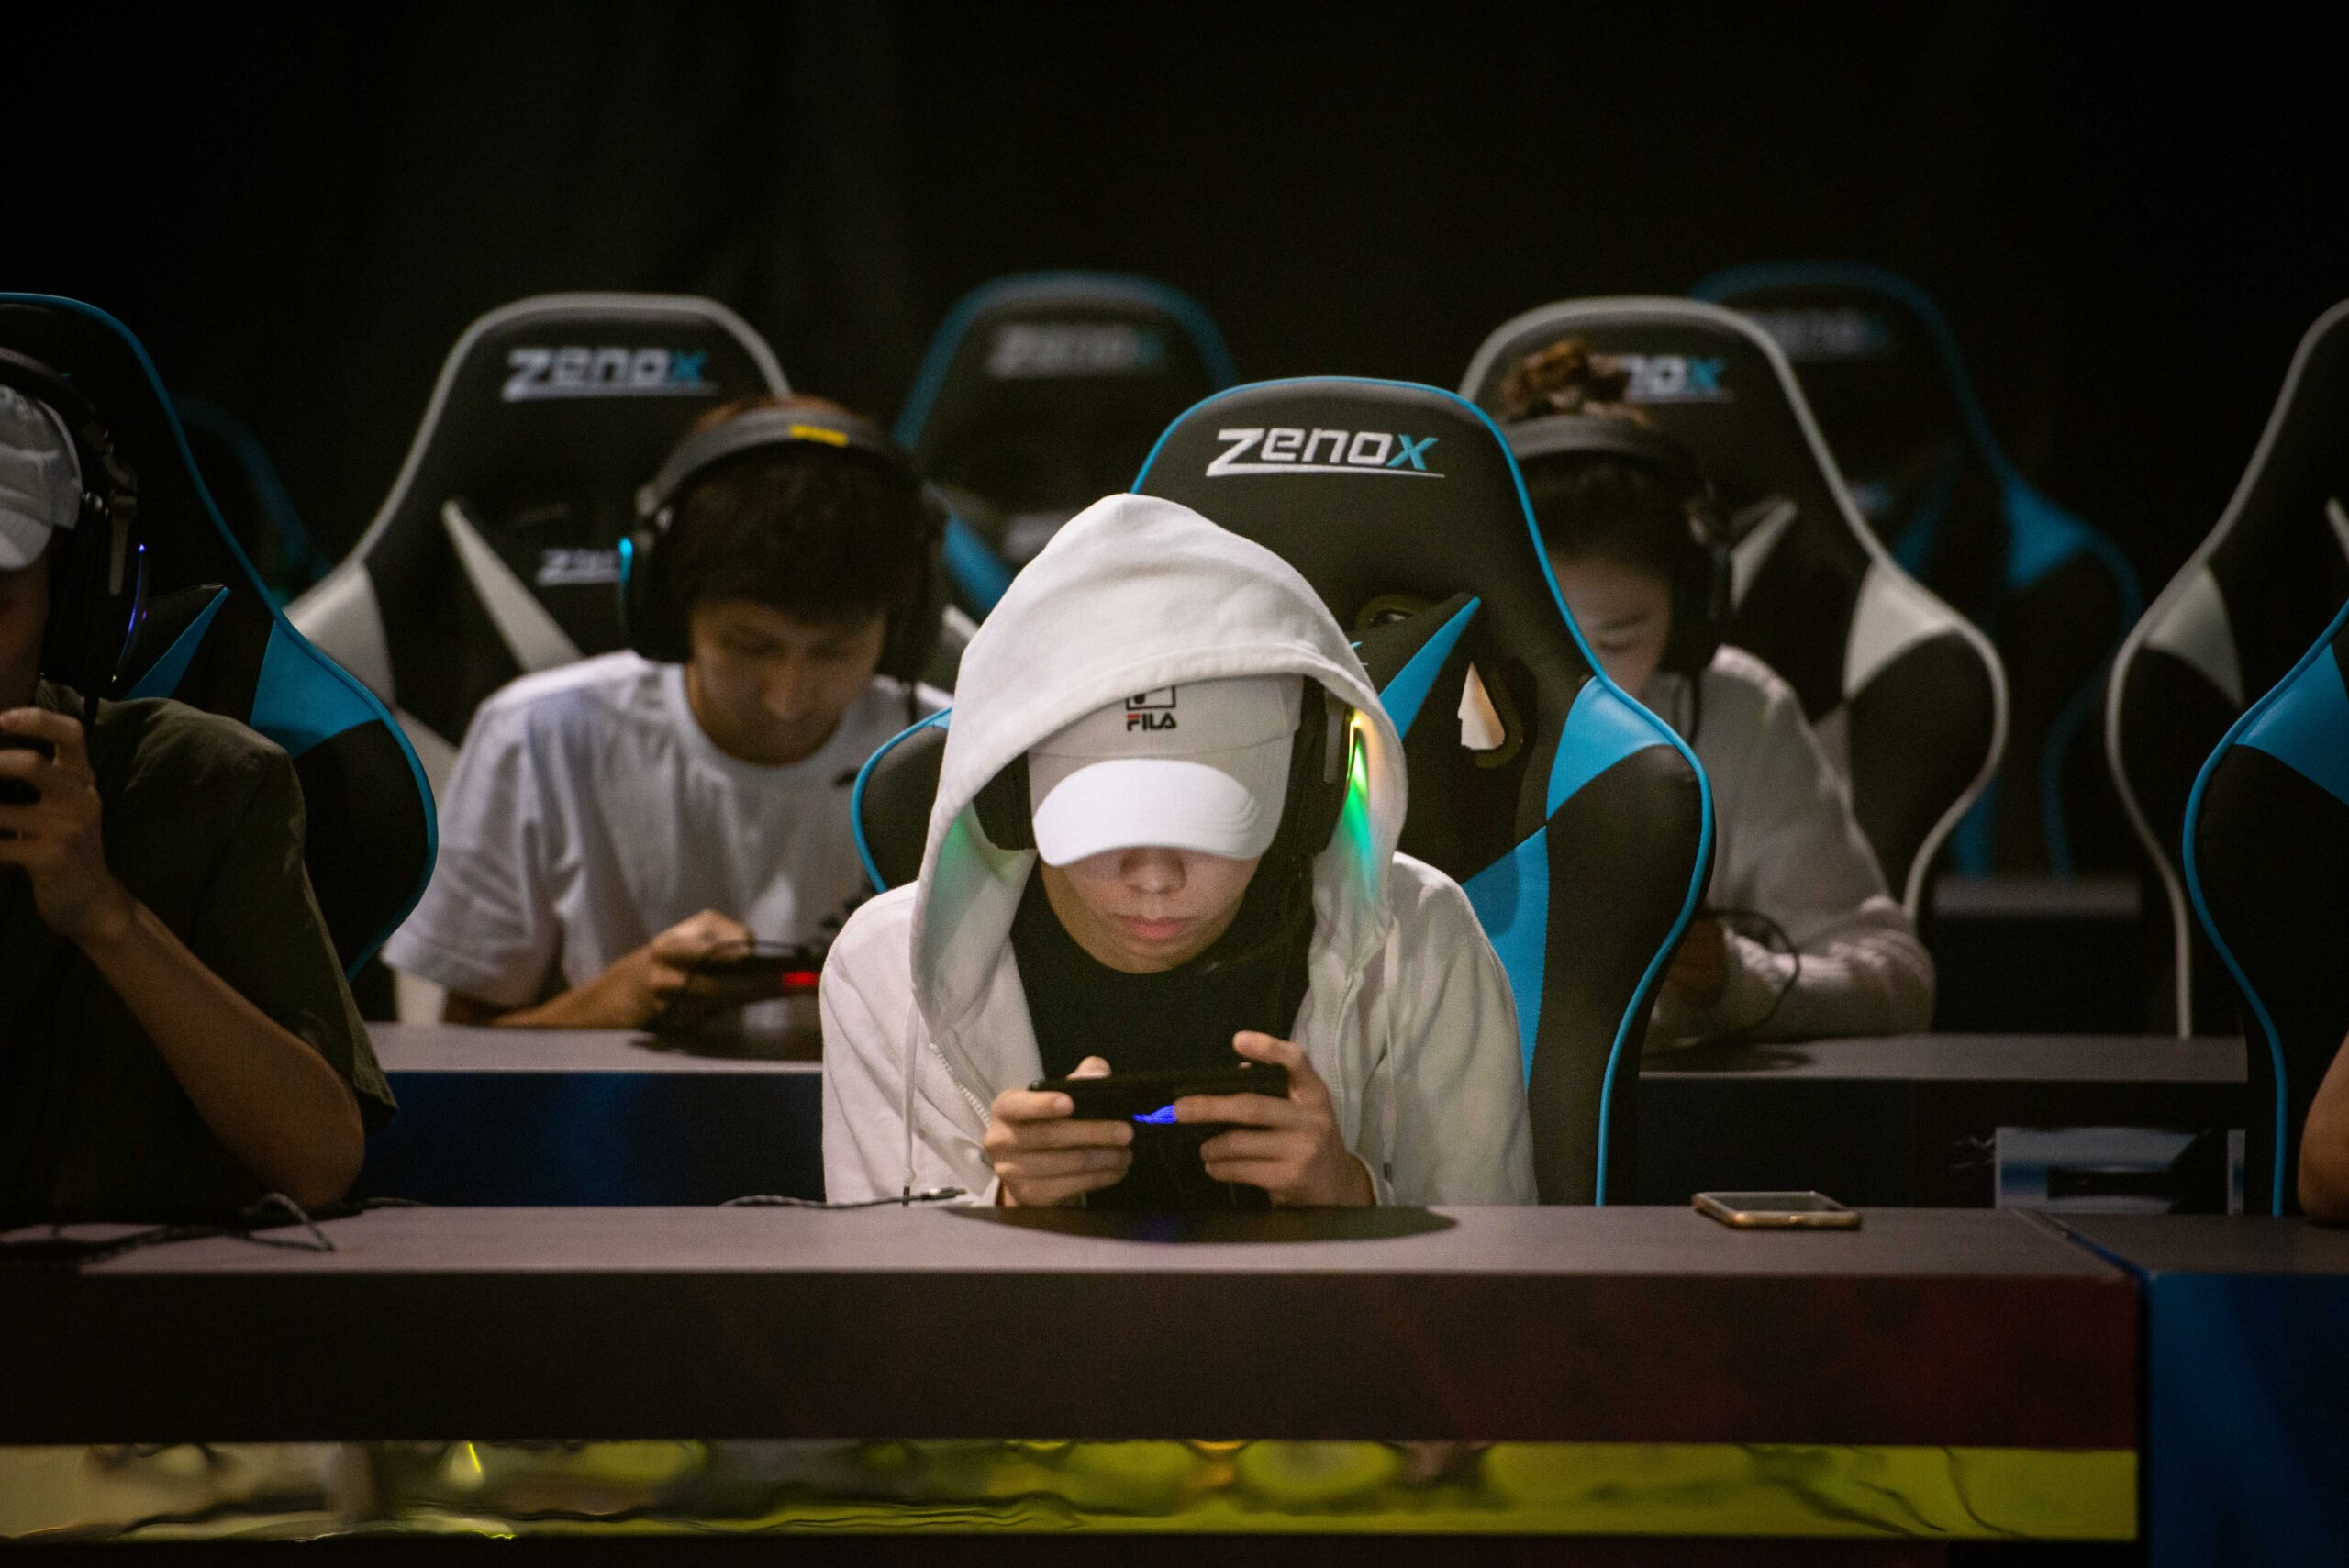 Time out: China restricts gaming to 3 hours a week for minors